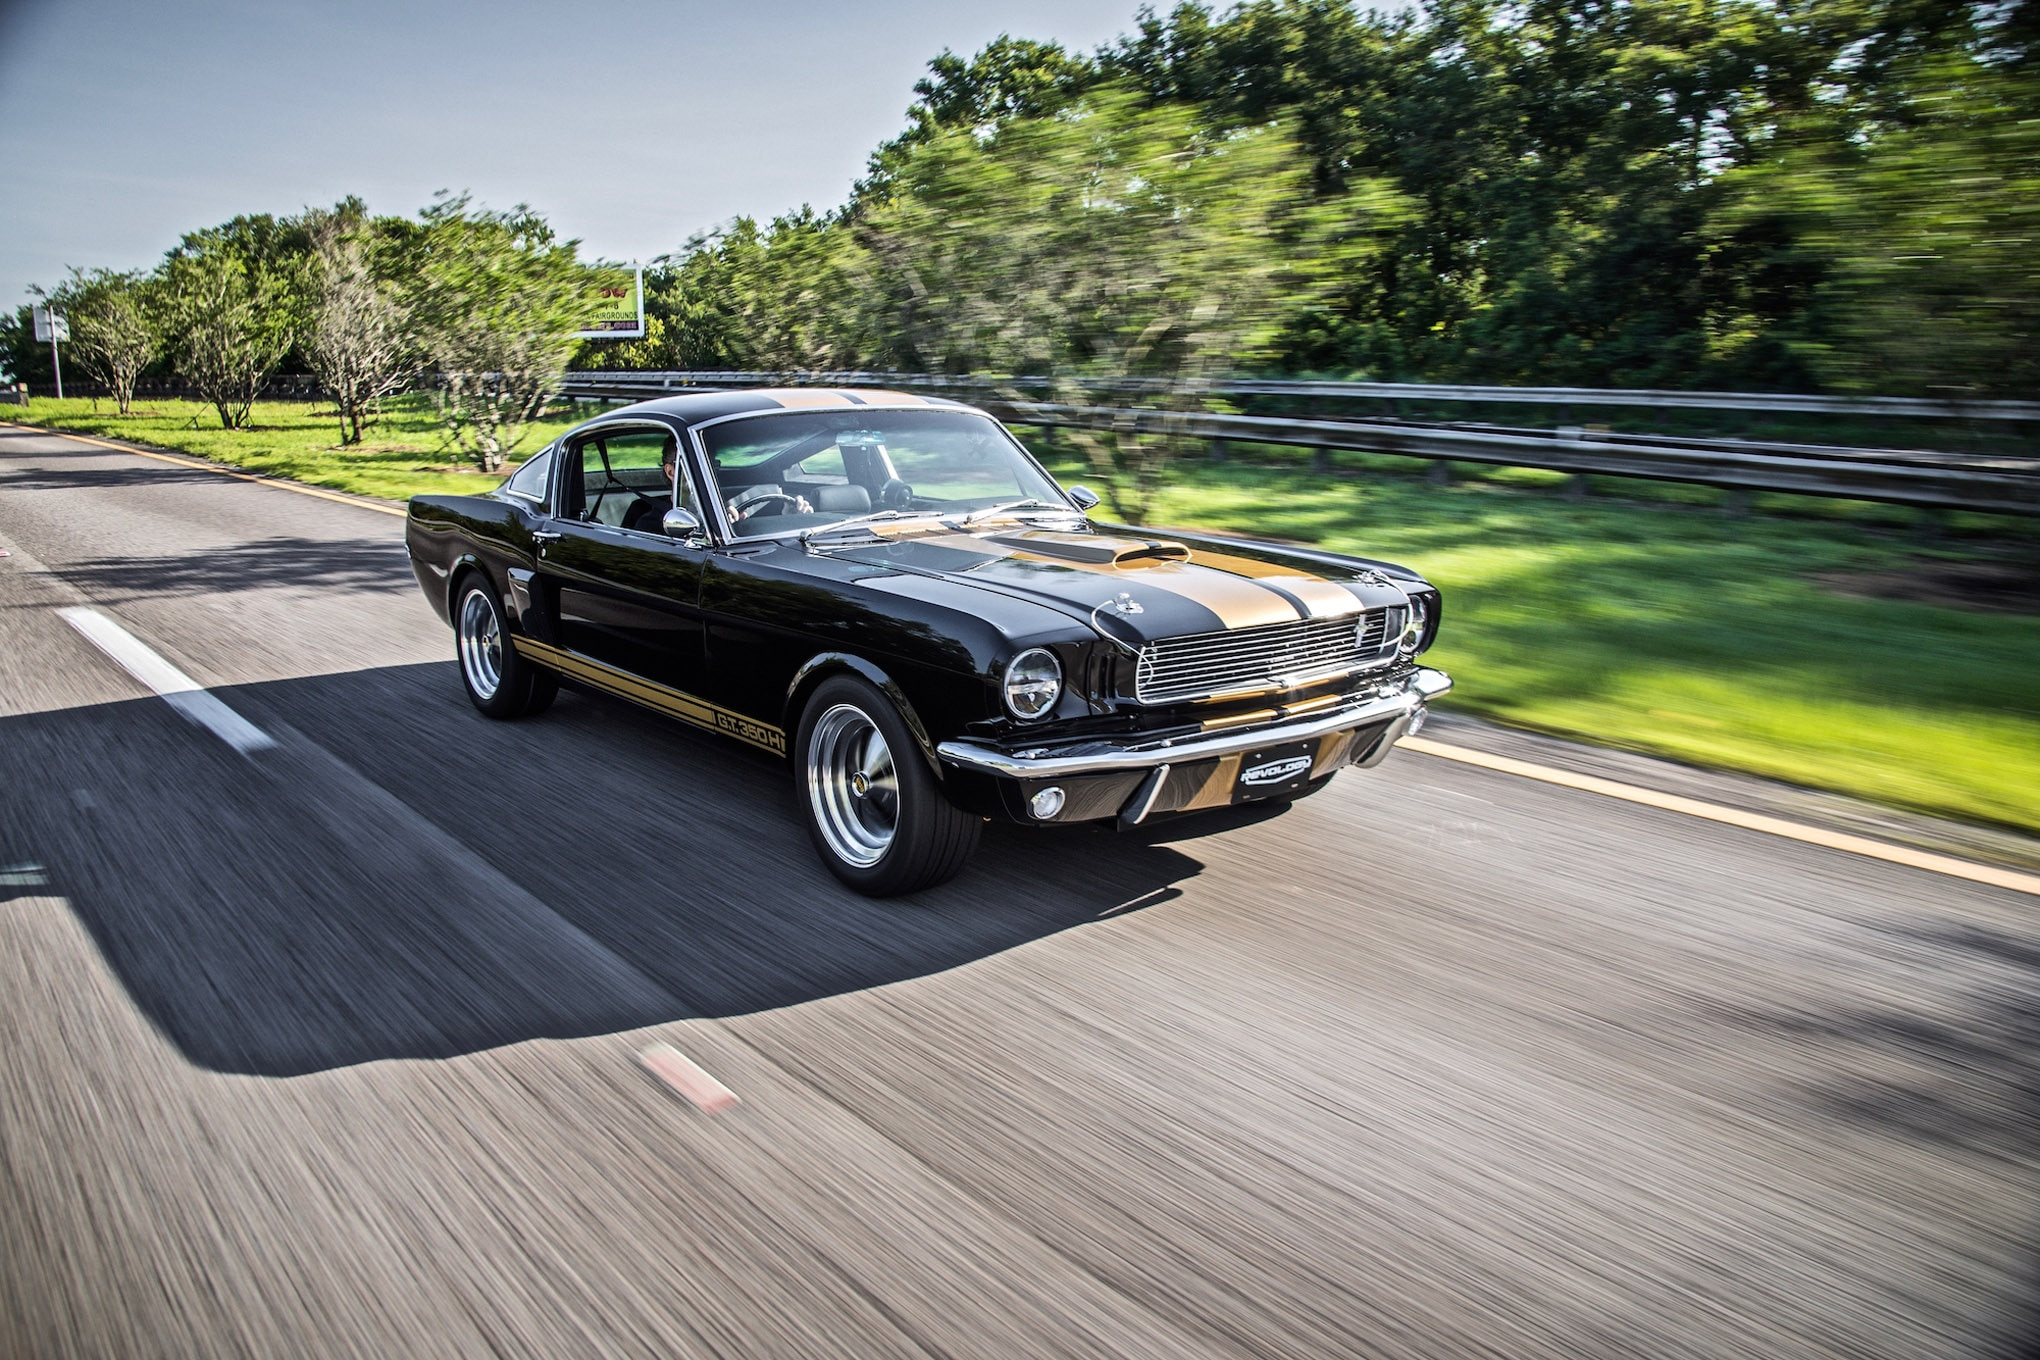 02 revology cars 1966 shelby gt350h ford mustang replica right hand